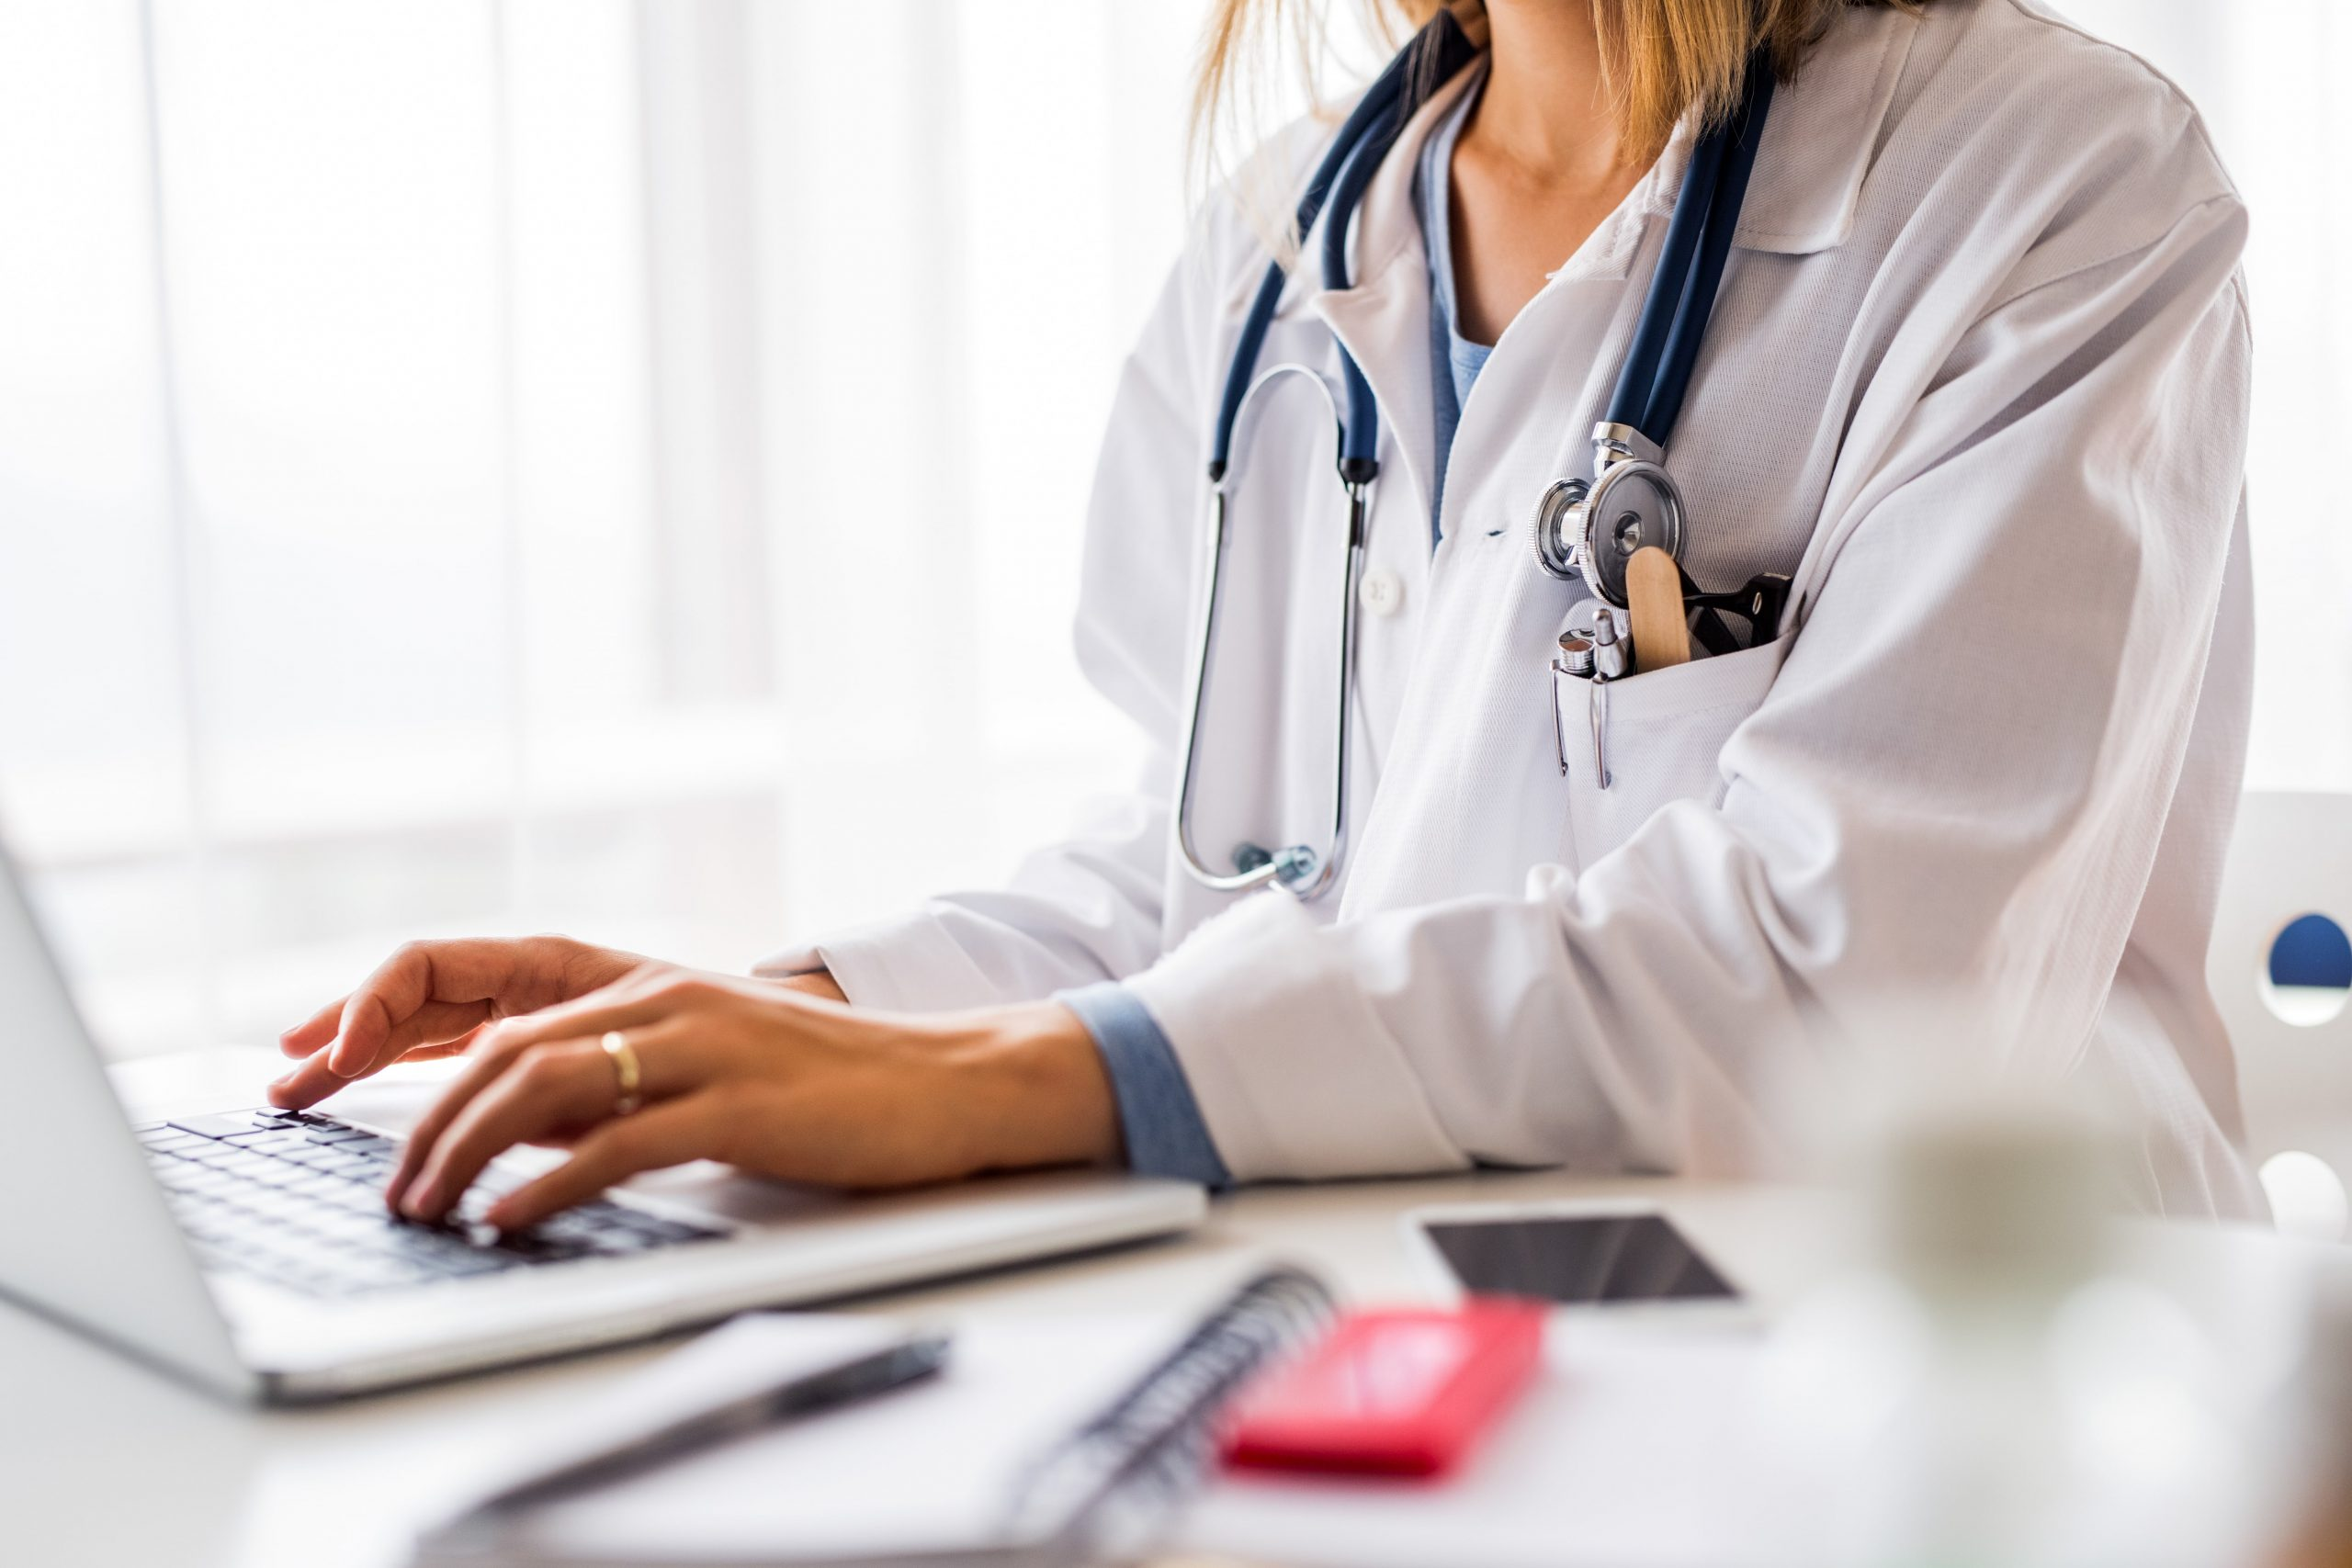 female-doctor-with-laptop-working-at-the-office-de-P9UPLVT-min